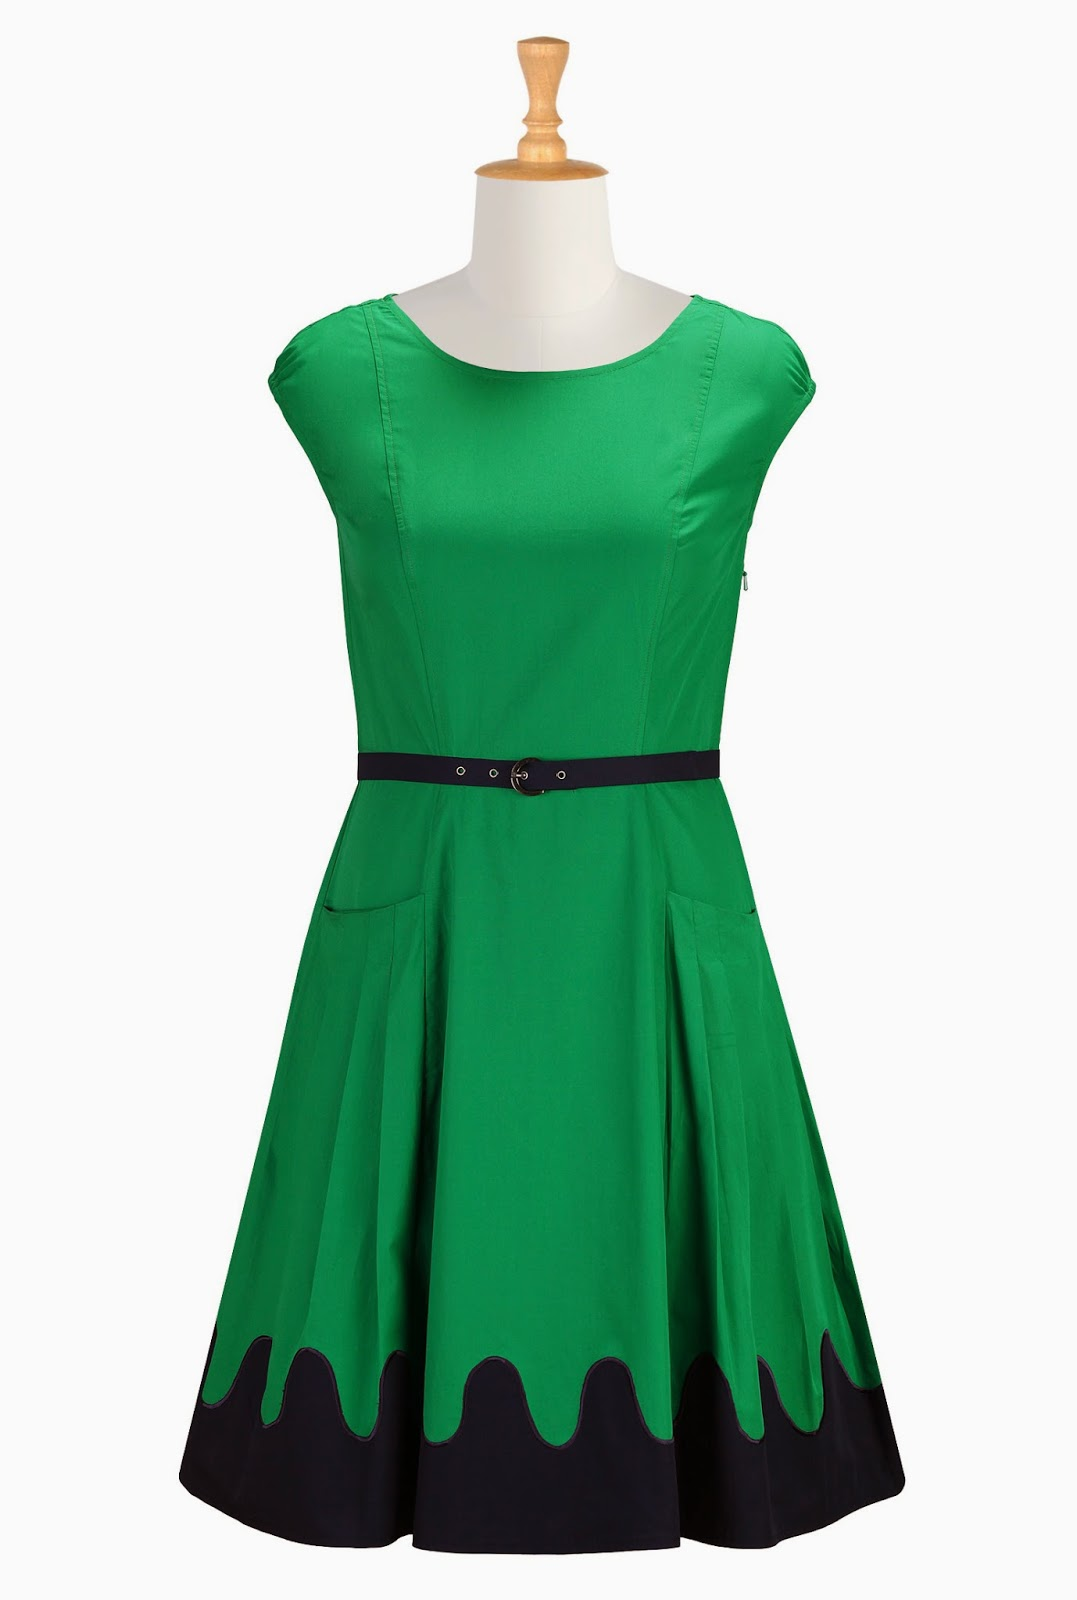 http://www.eshakti.com/Product/CL0030982/Scallop-trim-poplin-dress